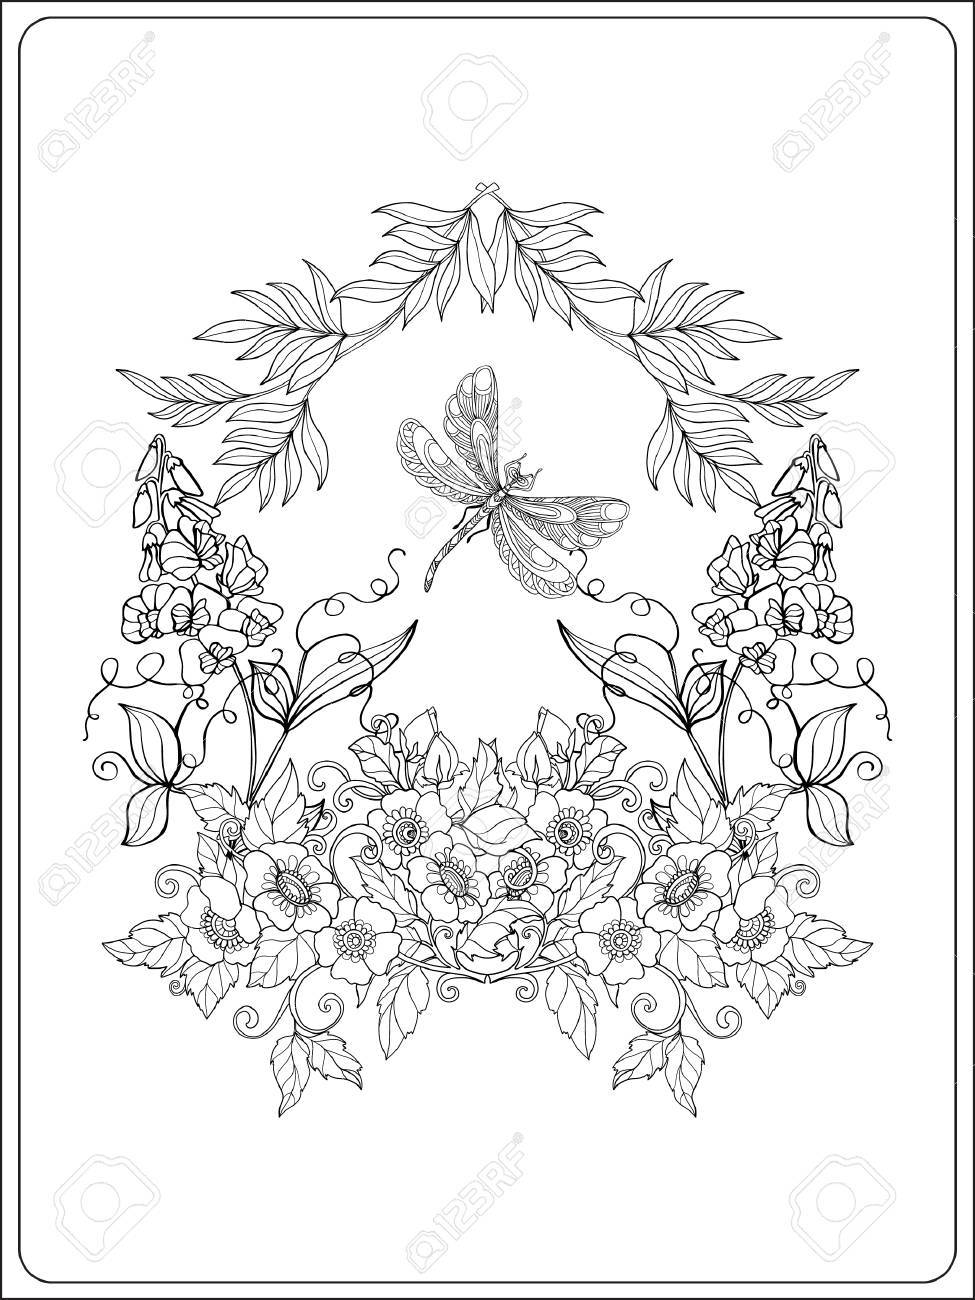 Vector Illustration Decorative Flowers Birds And Butterflies Coloring Book For Adult Older Children